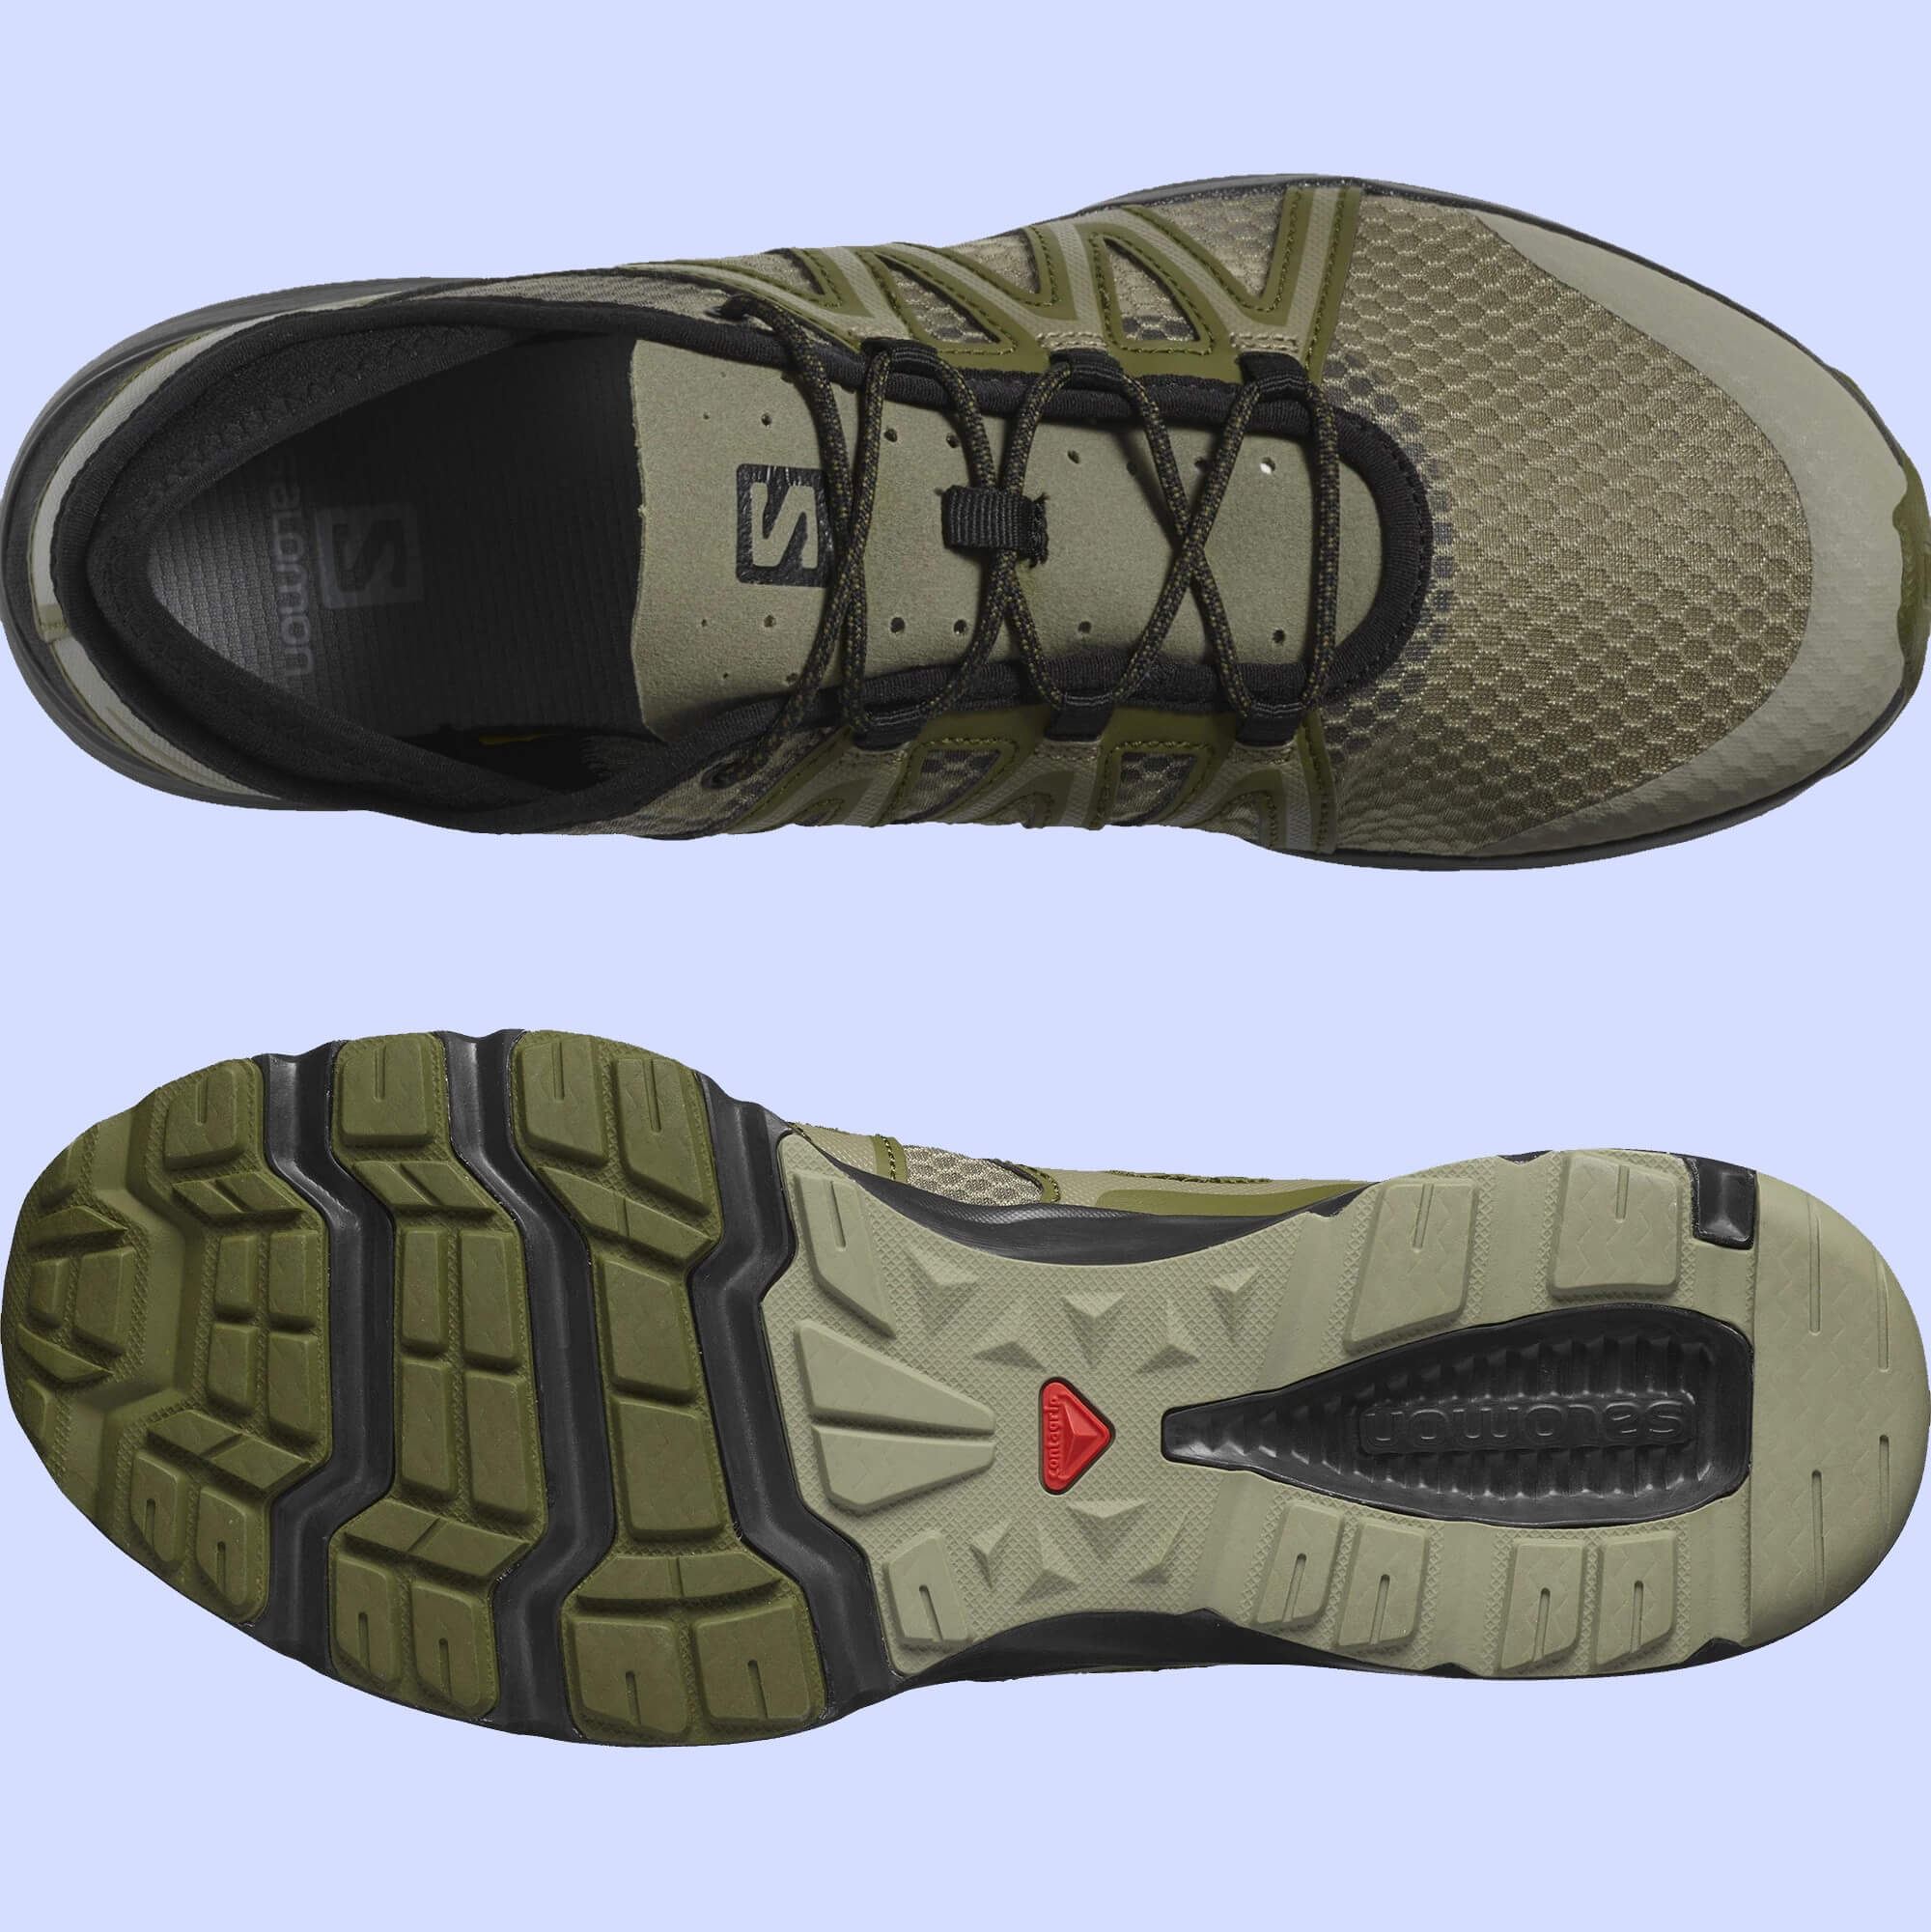 Outsole and overhead details on the Salomon Crossamphibian Swift 2 water running shoe